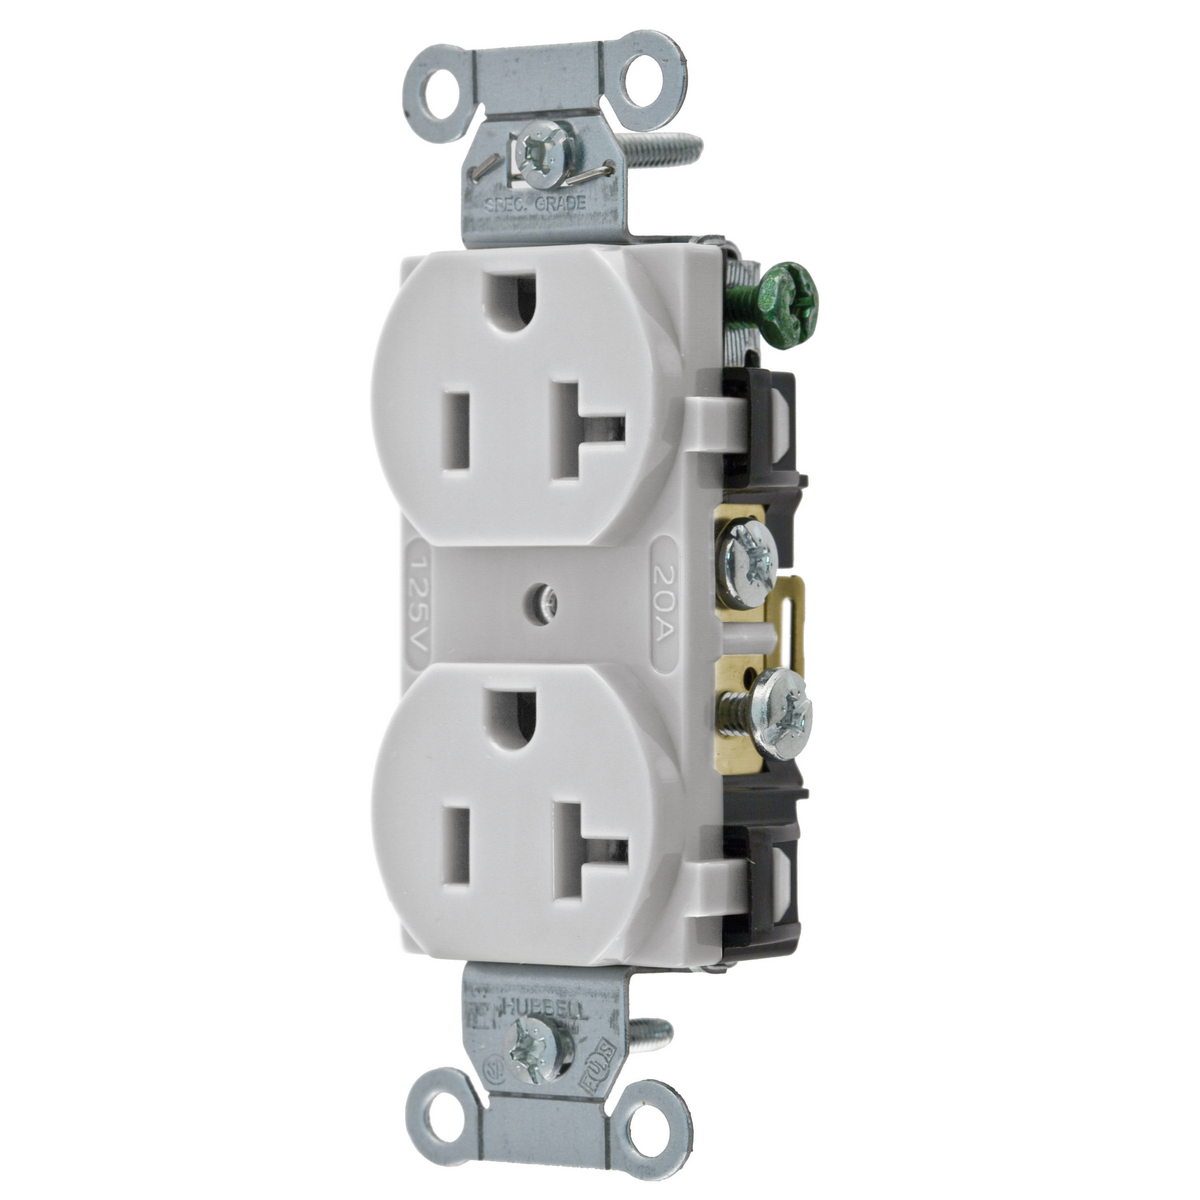 Hubbell Inc. CR20OW Duplex Receptacle, 20 Amp, 125 Volt, White ...